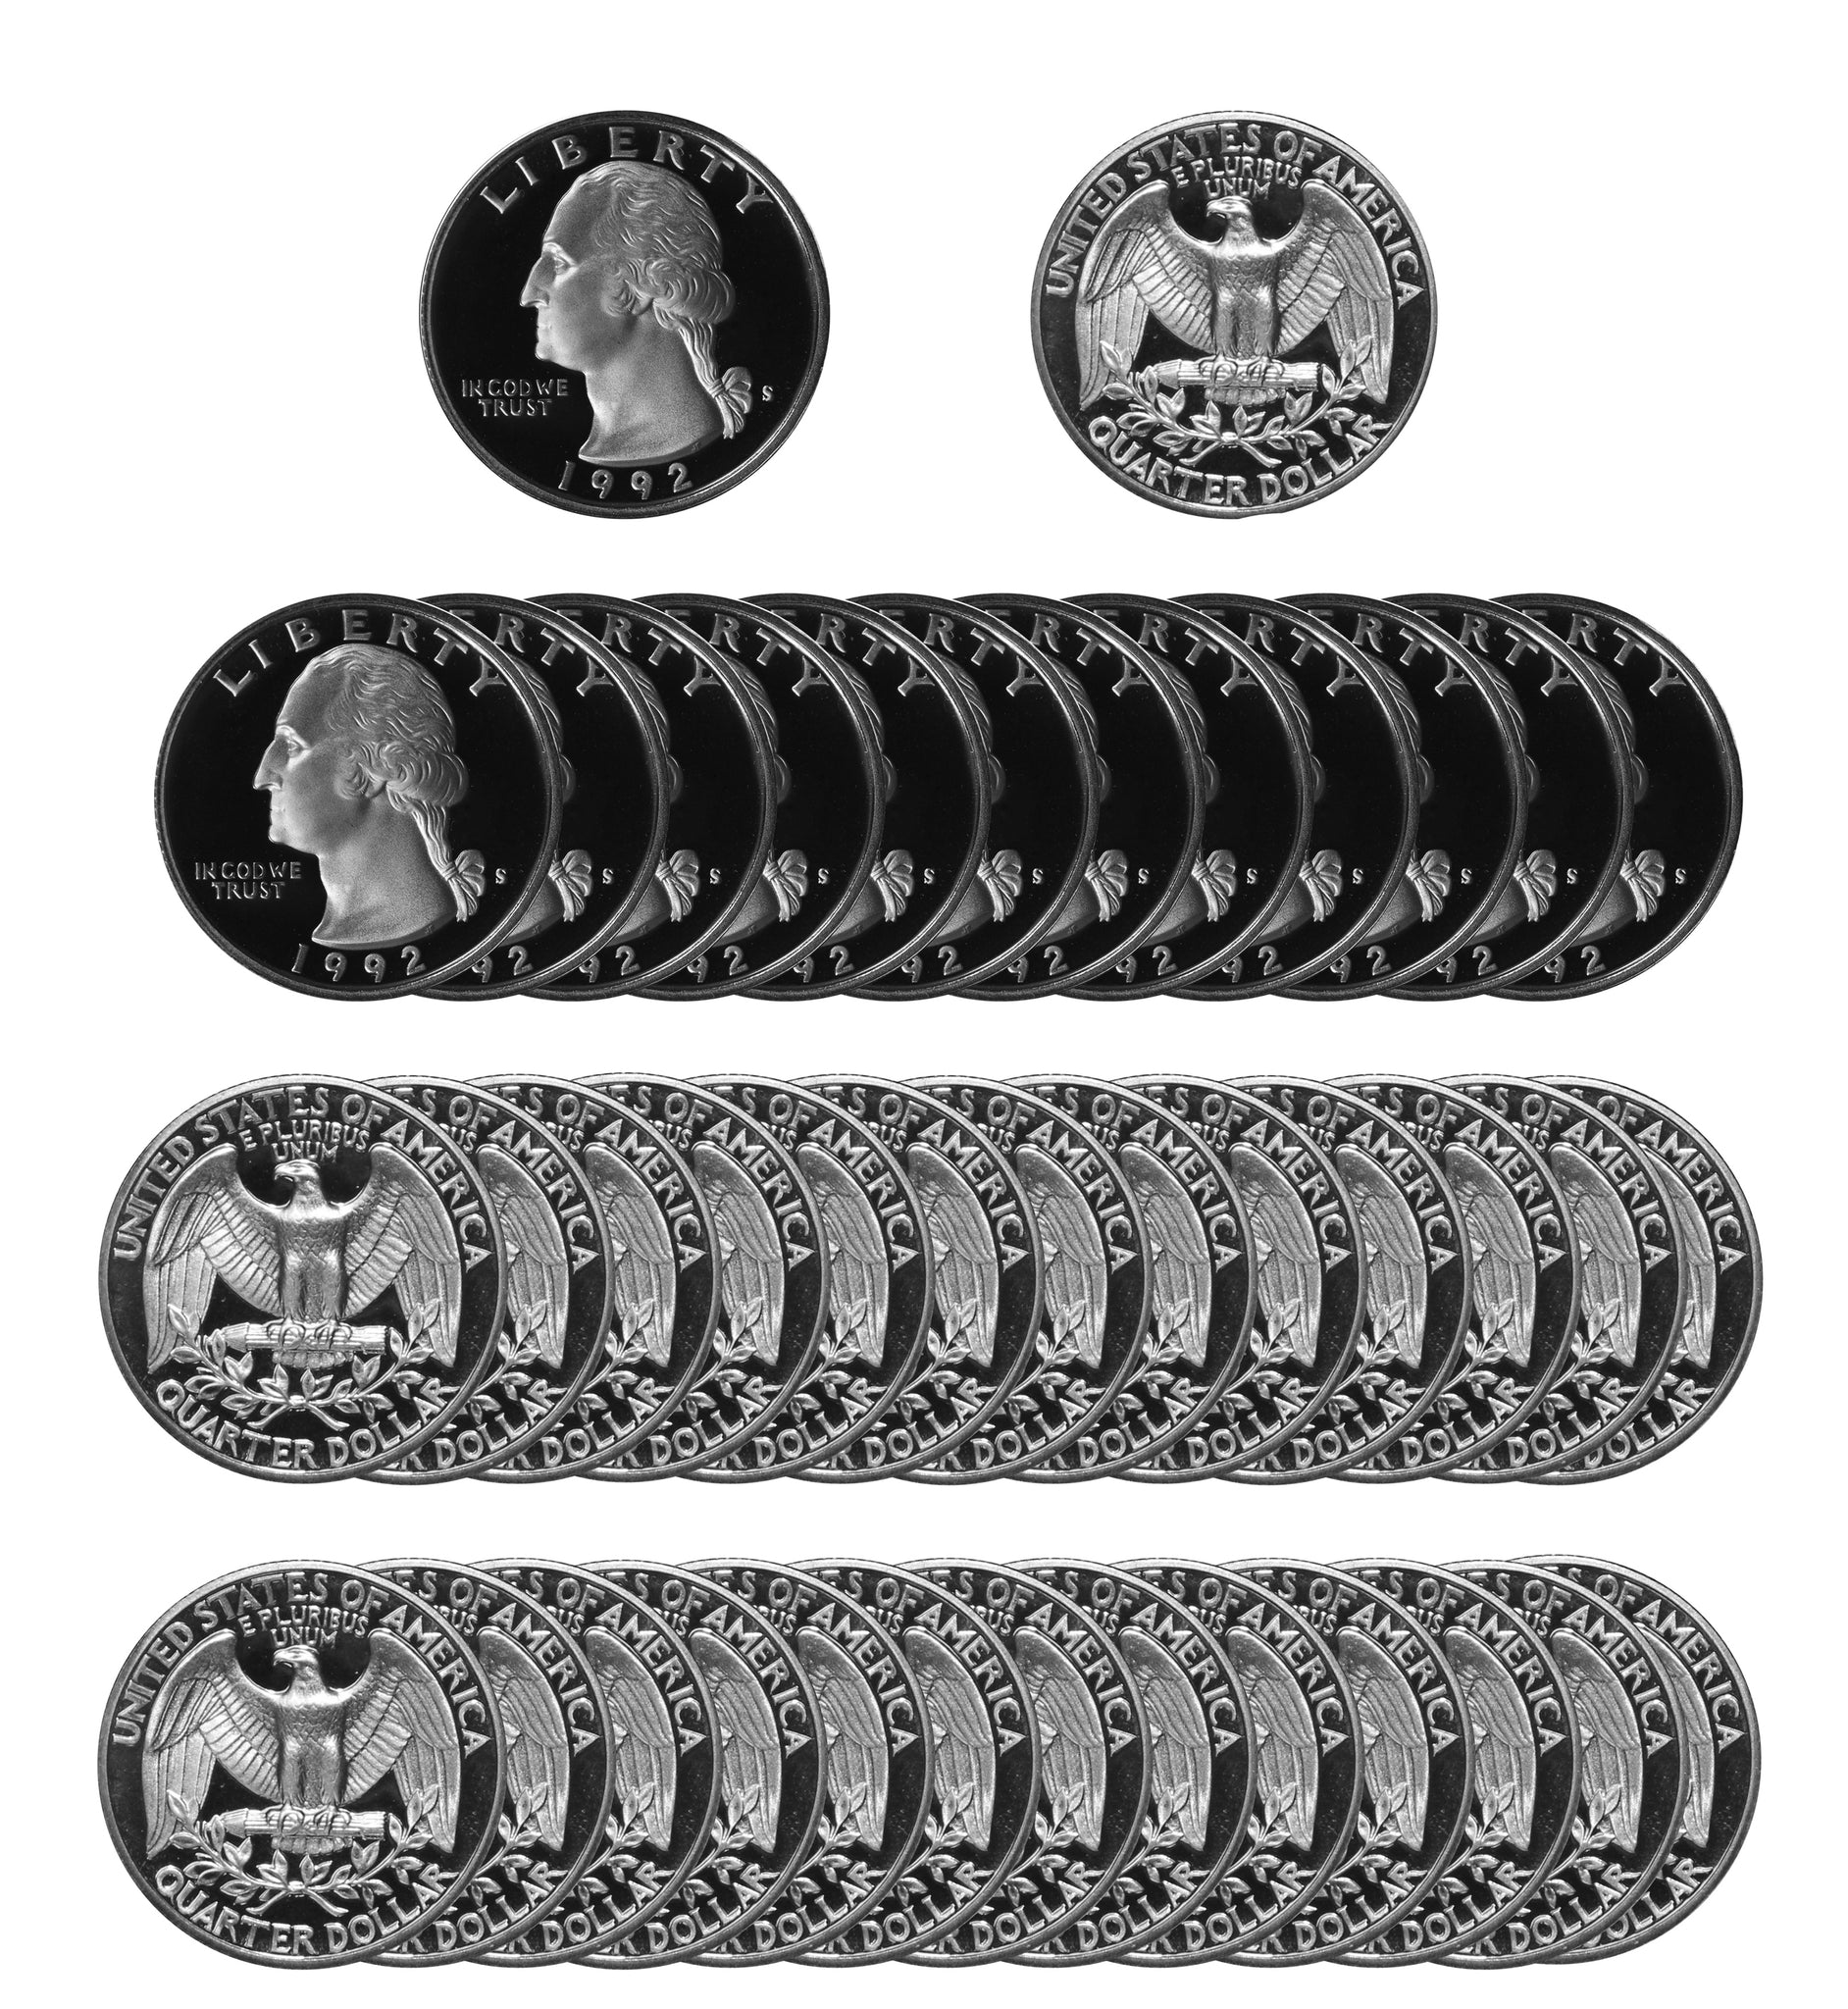 1992 S Washington Quarter Gem Deep Cameo Proof Roll 90% Silver (40 Coins)